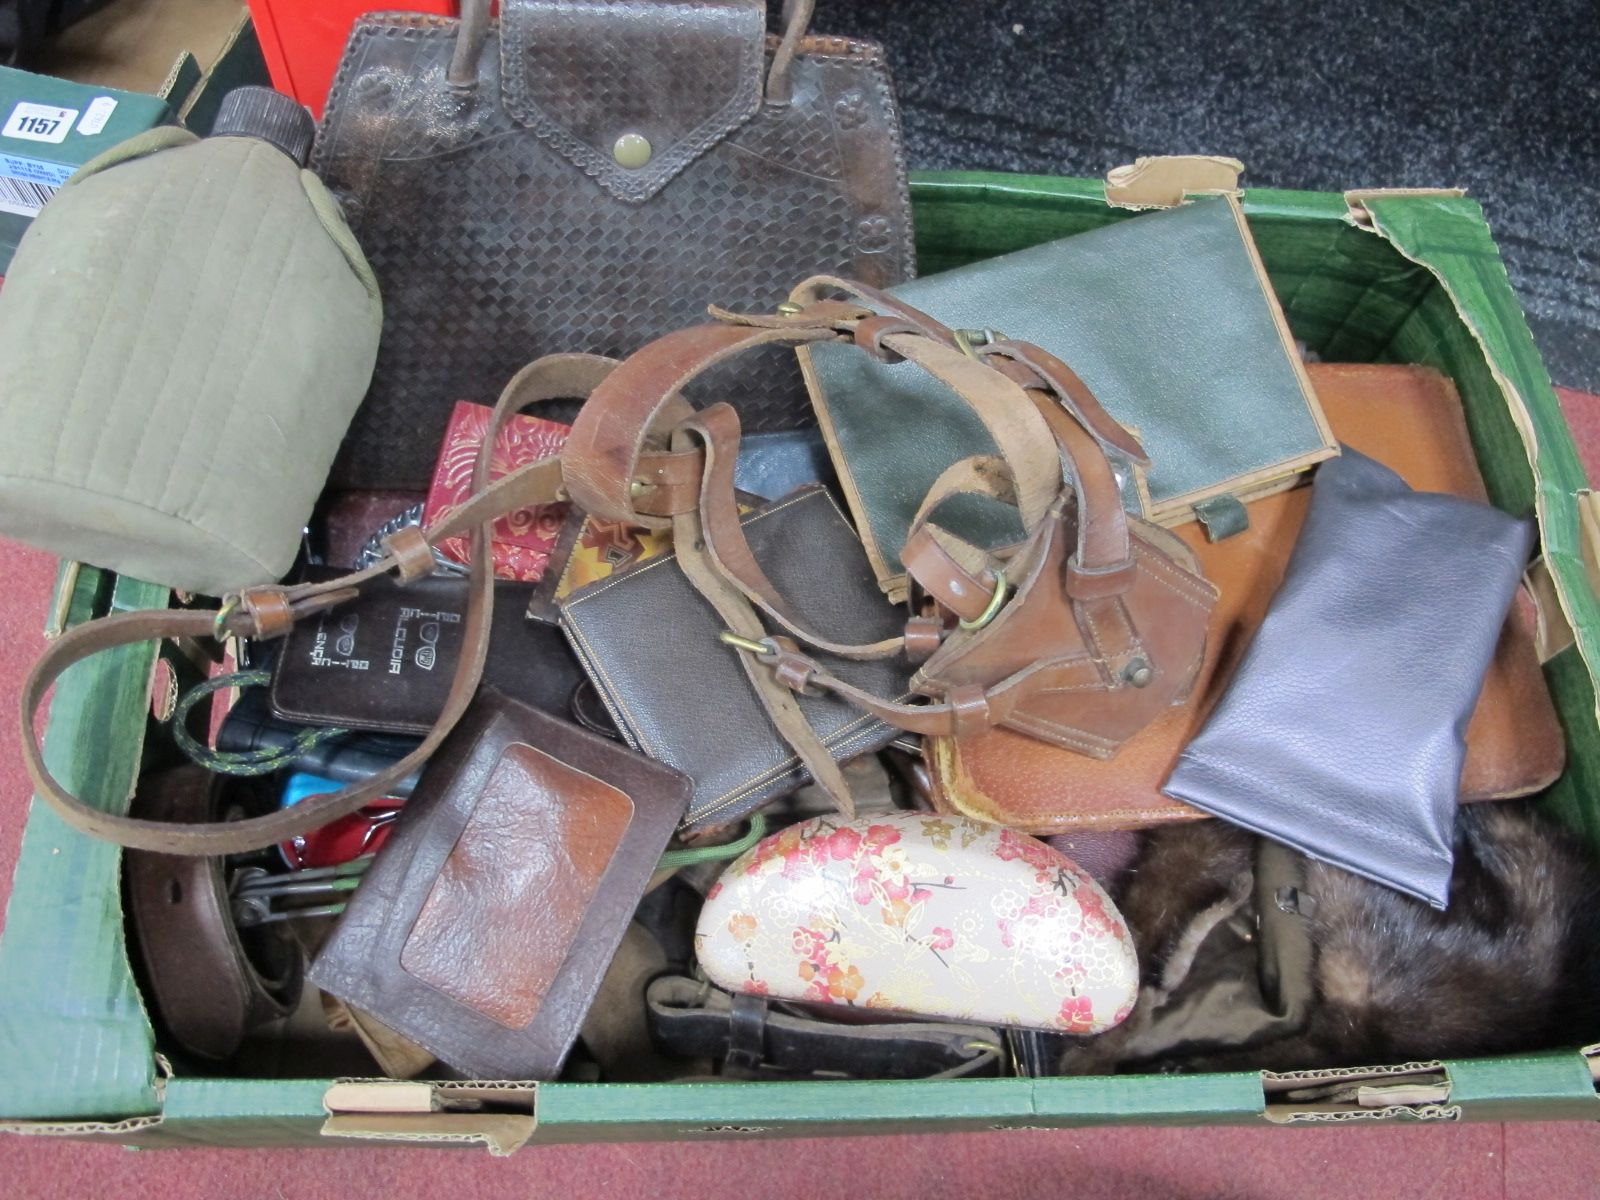 Ladies Leather Purses, gents leather wallets, sunglasses, etc:- One Box.